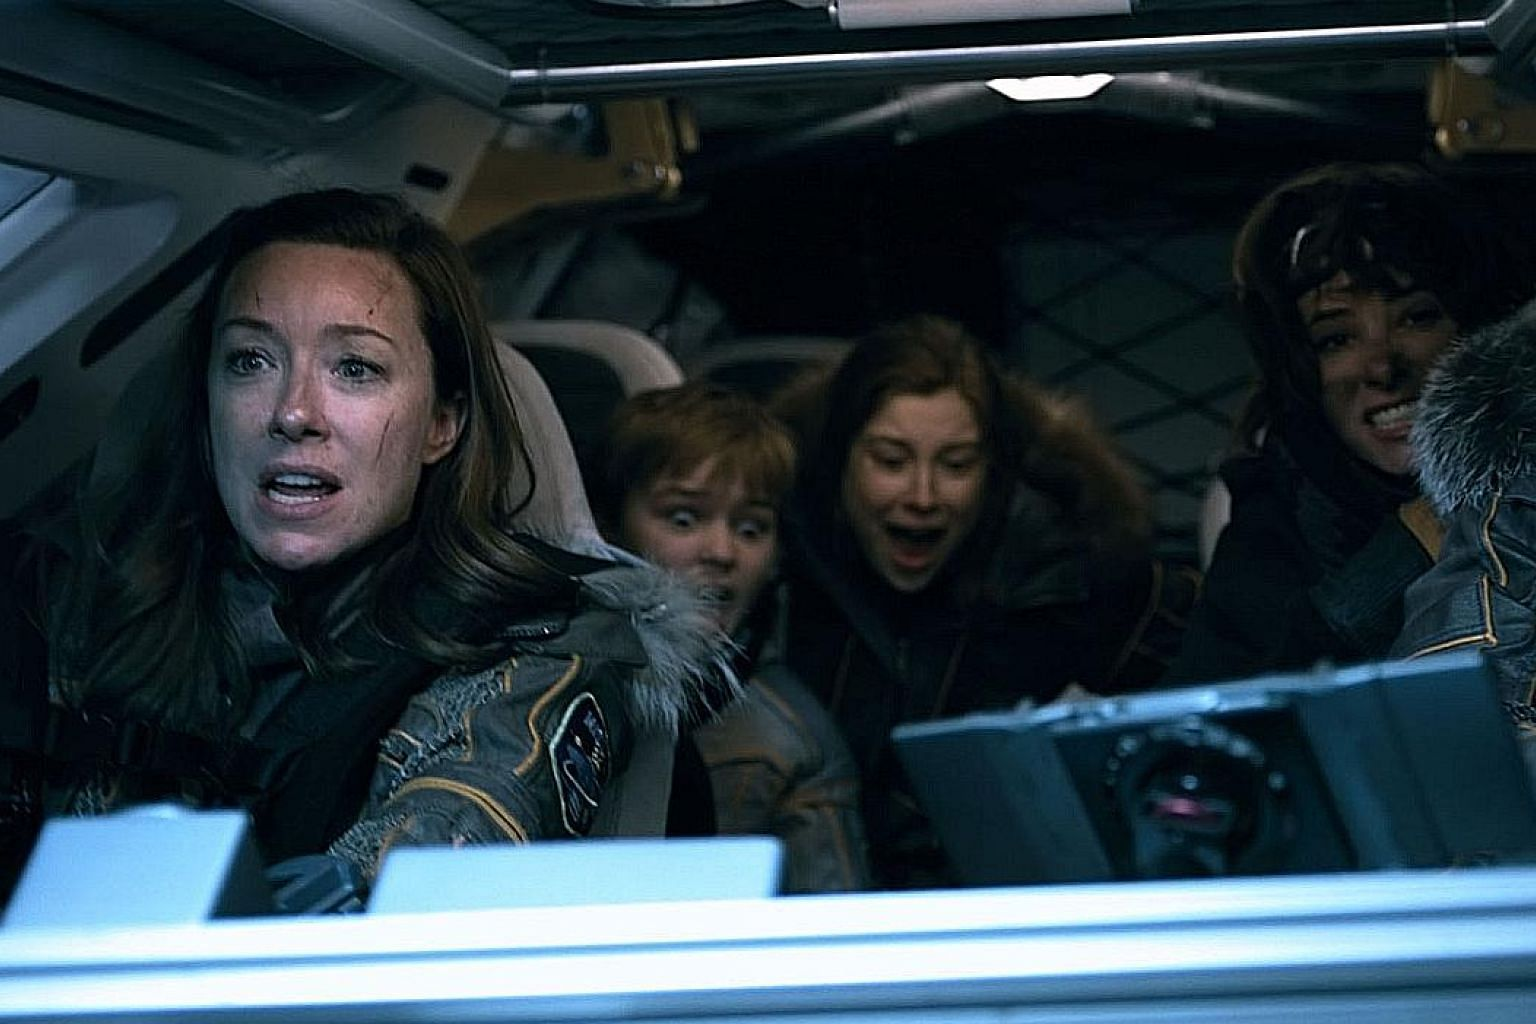 Lost In Space, inspired by The Swiss Family Robinson, stars (from far left) Molly Parker, Max Jenkins, Mina Sundwall, Taylor Russell and Toby Stephens.